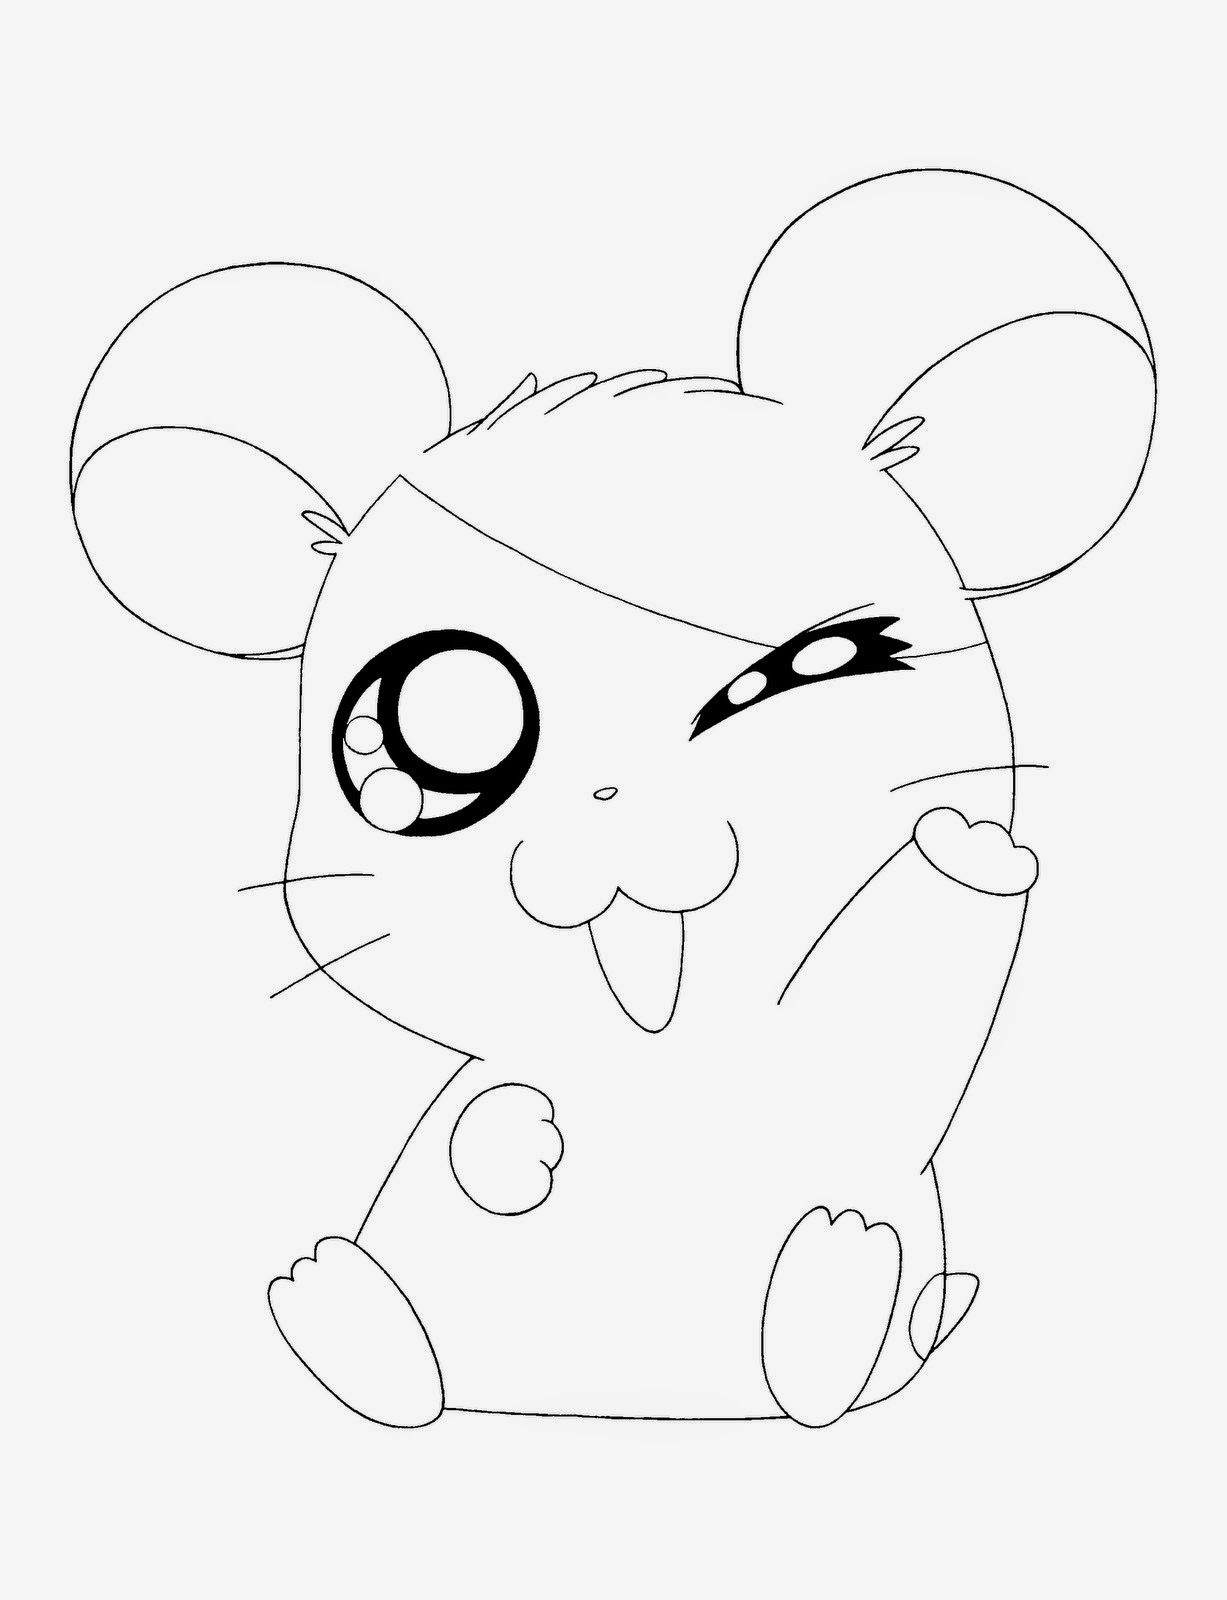 Coloring Pages Cute And Easy Coloring Pages Free And Printable